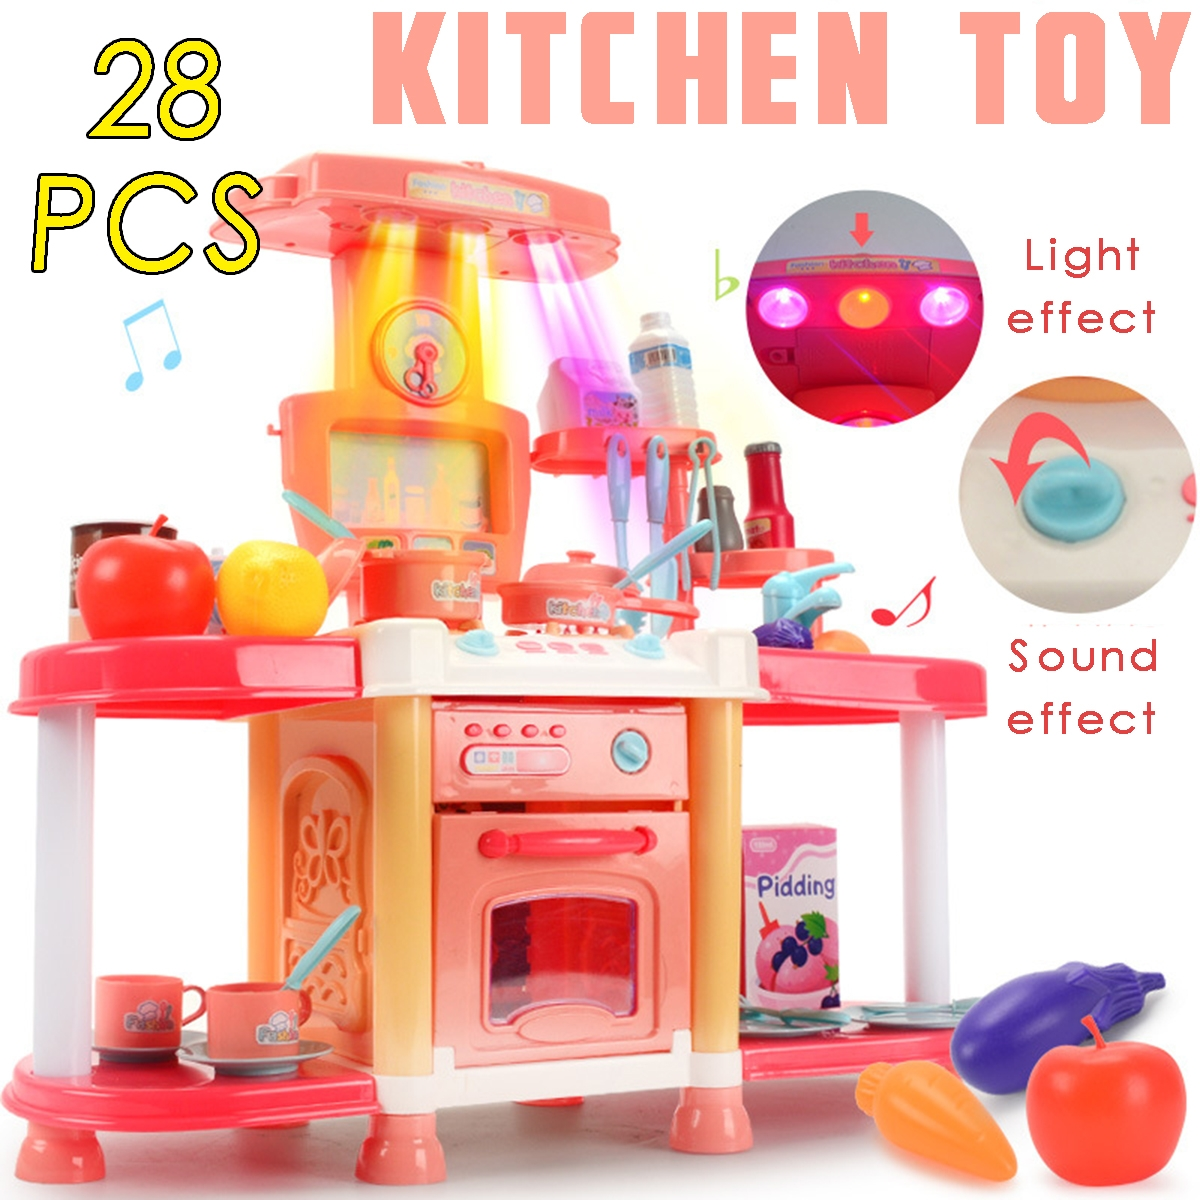 Children's Playhouse Kitchen Toy Set Sound And Light Sound Effects Girls Cook And Cook Utensils